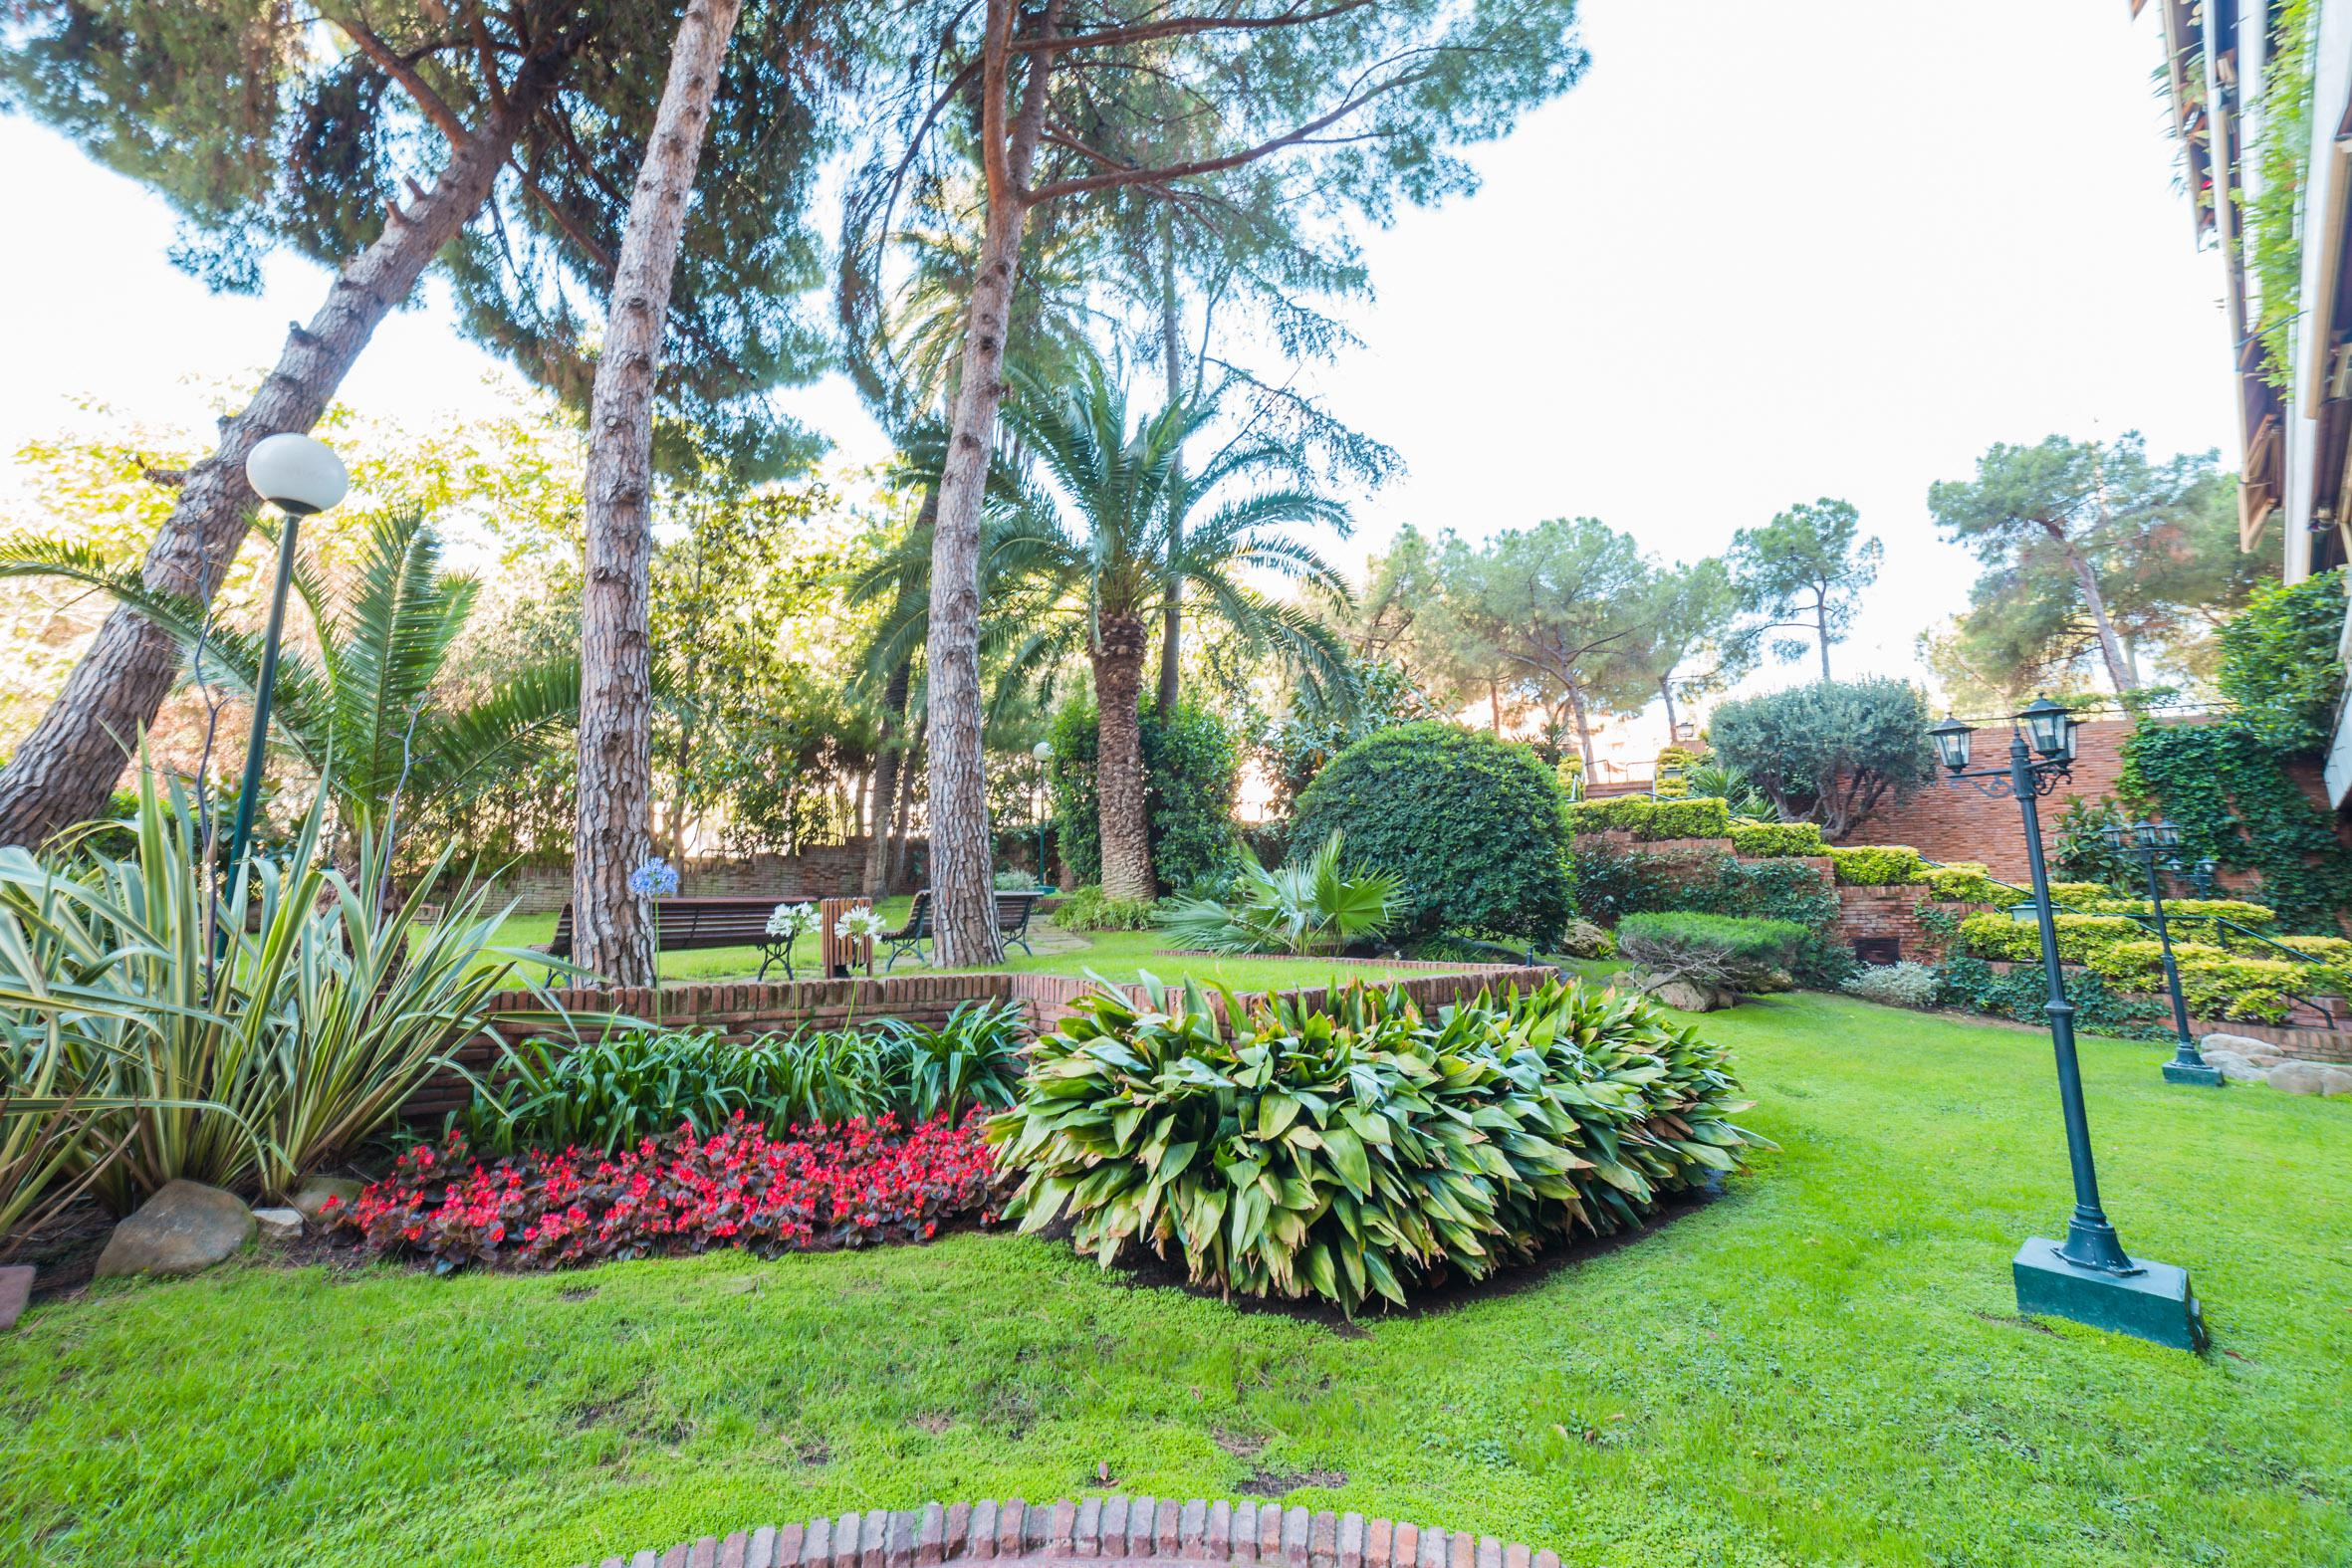 248988 Flat for sale in Les Corts, Les Corts 35